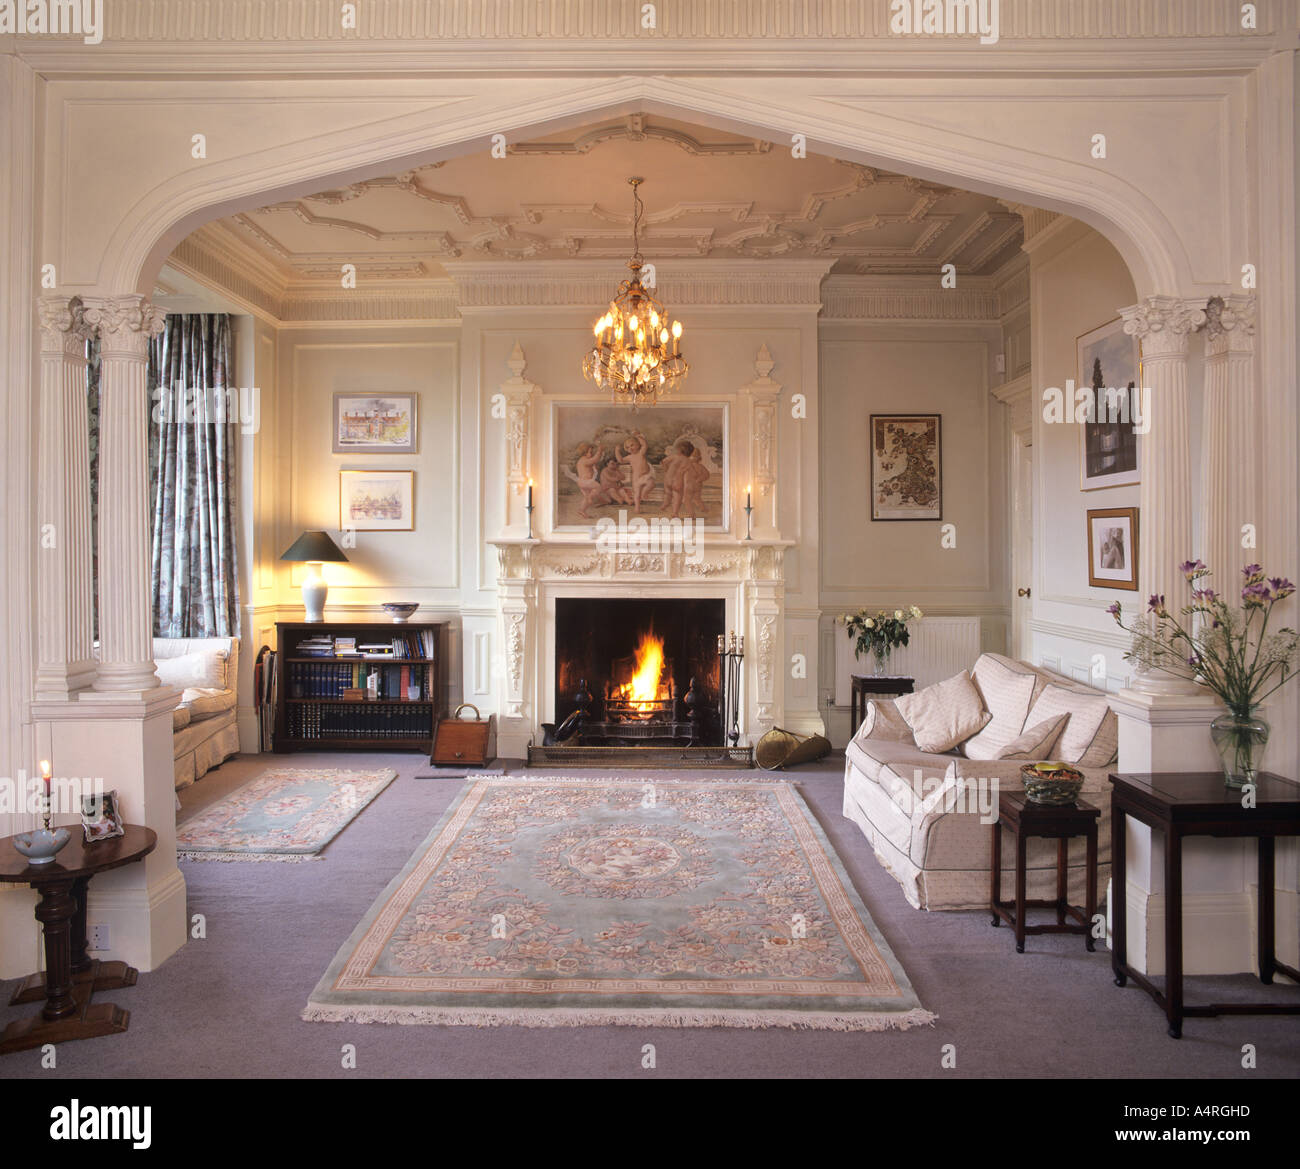 Drawing Room Interior, Country House, England.   Stock Image